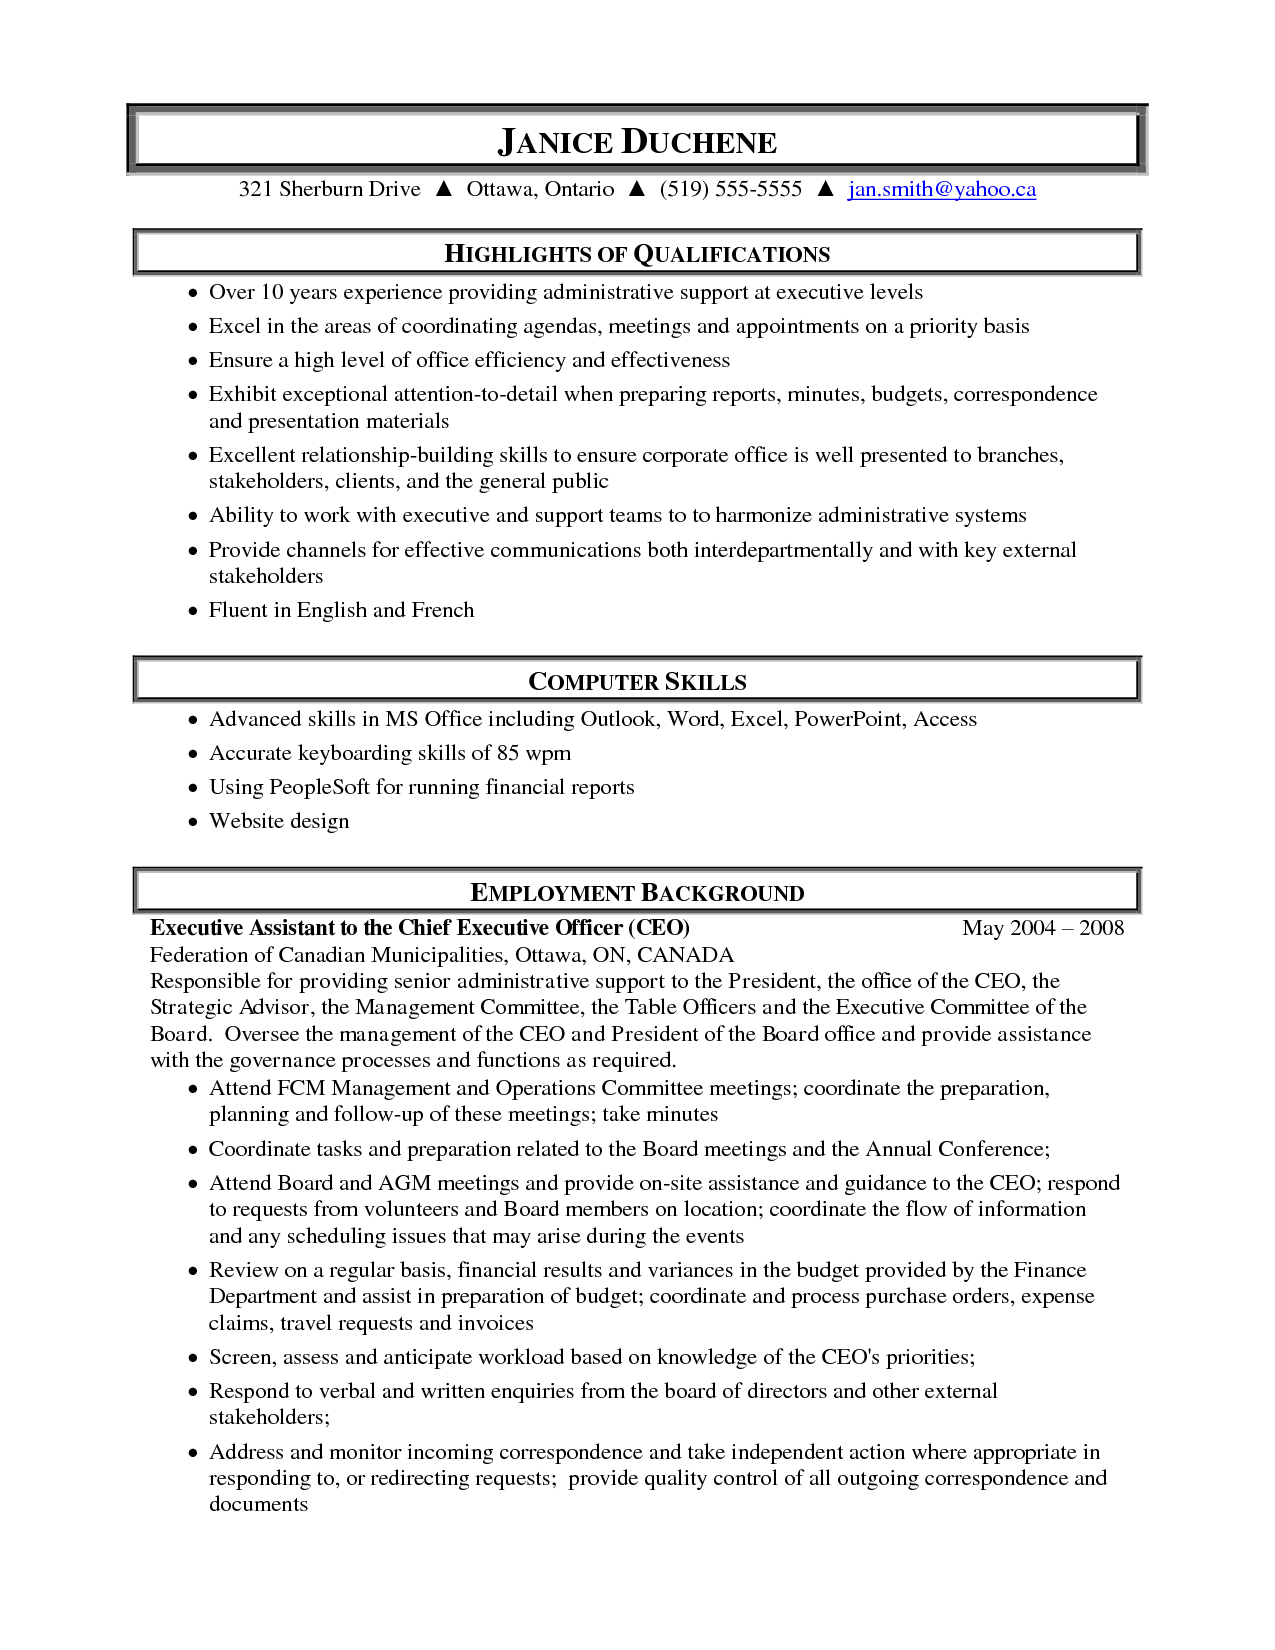 resume Office Assistant Resume Examples medical administrative assistant resume samples highlight of qualifications